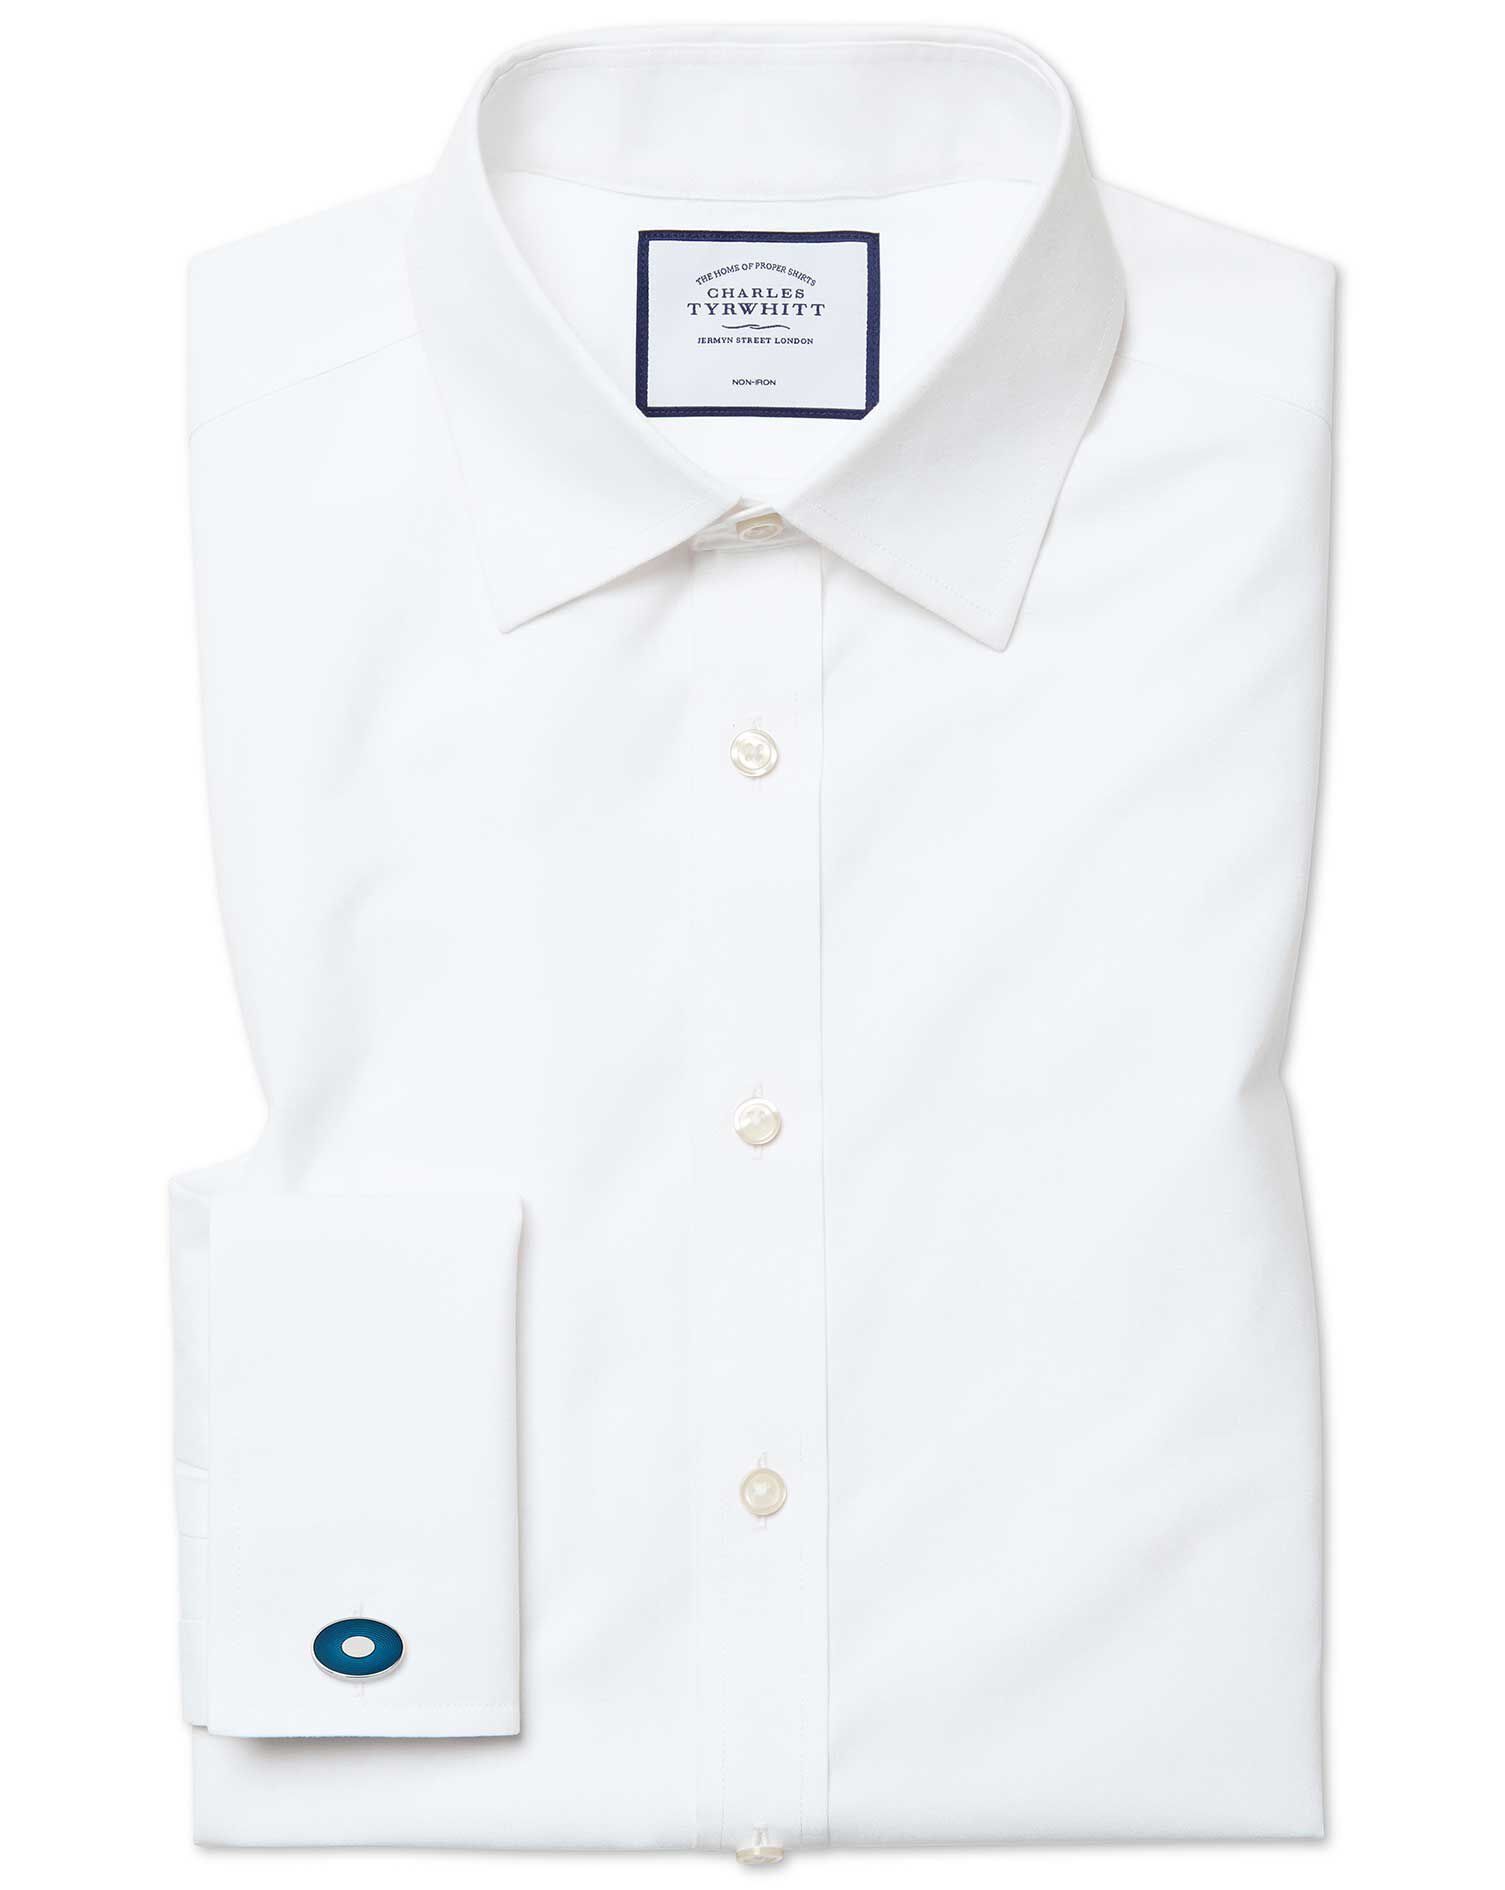 Slim Fit Non-Iron Poplin White Cotton Formal Shirt Double Cuff Size 16/33 by Charles Tyrwhitt